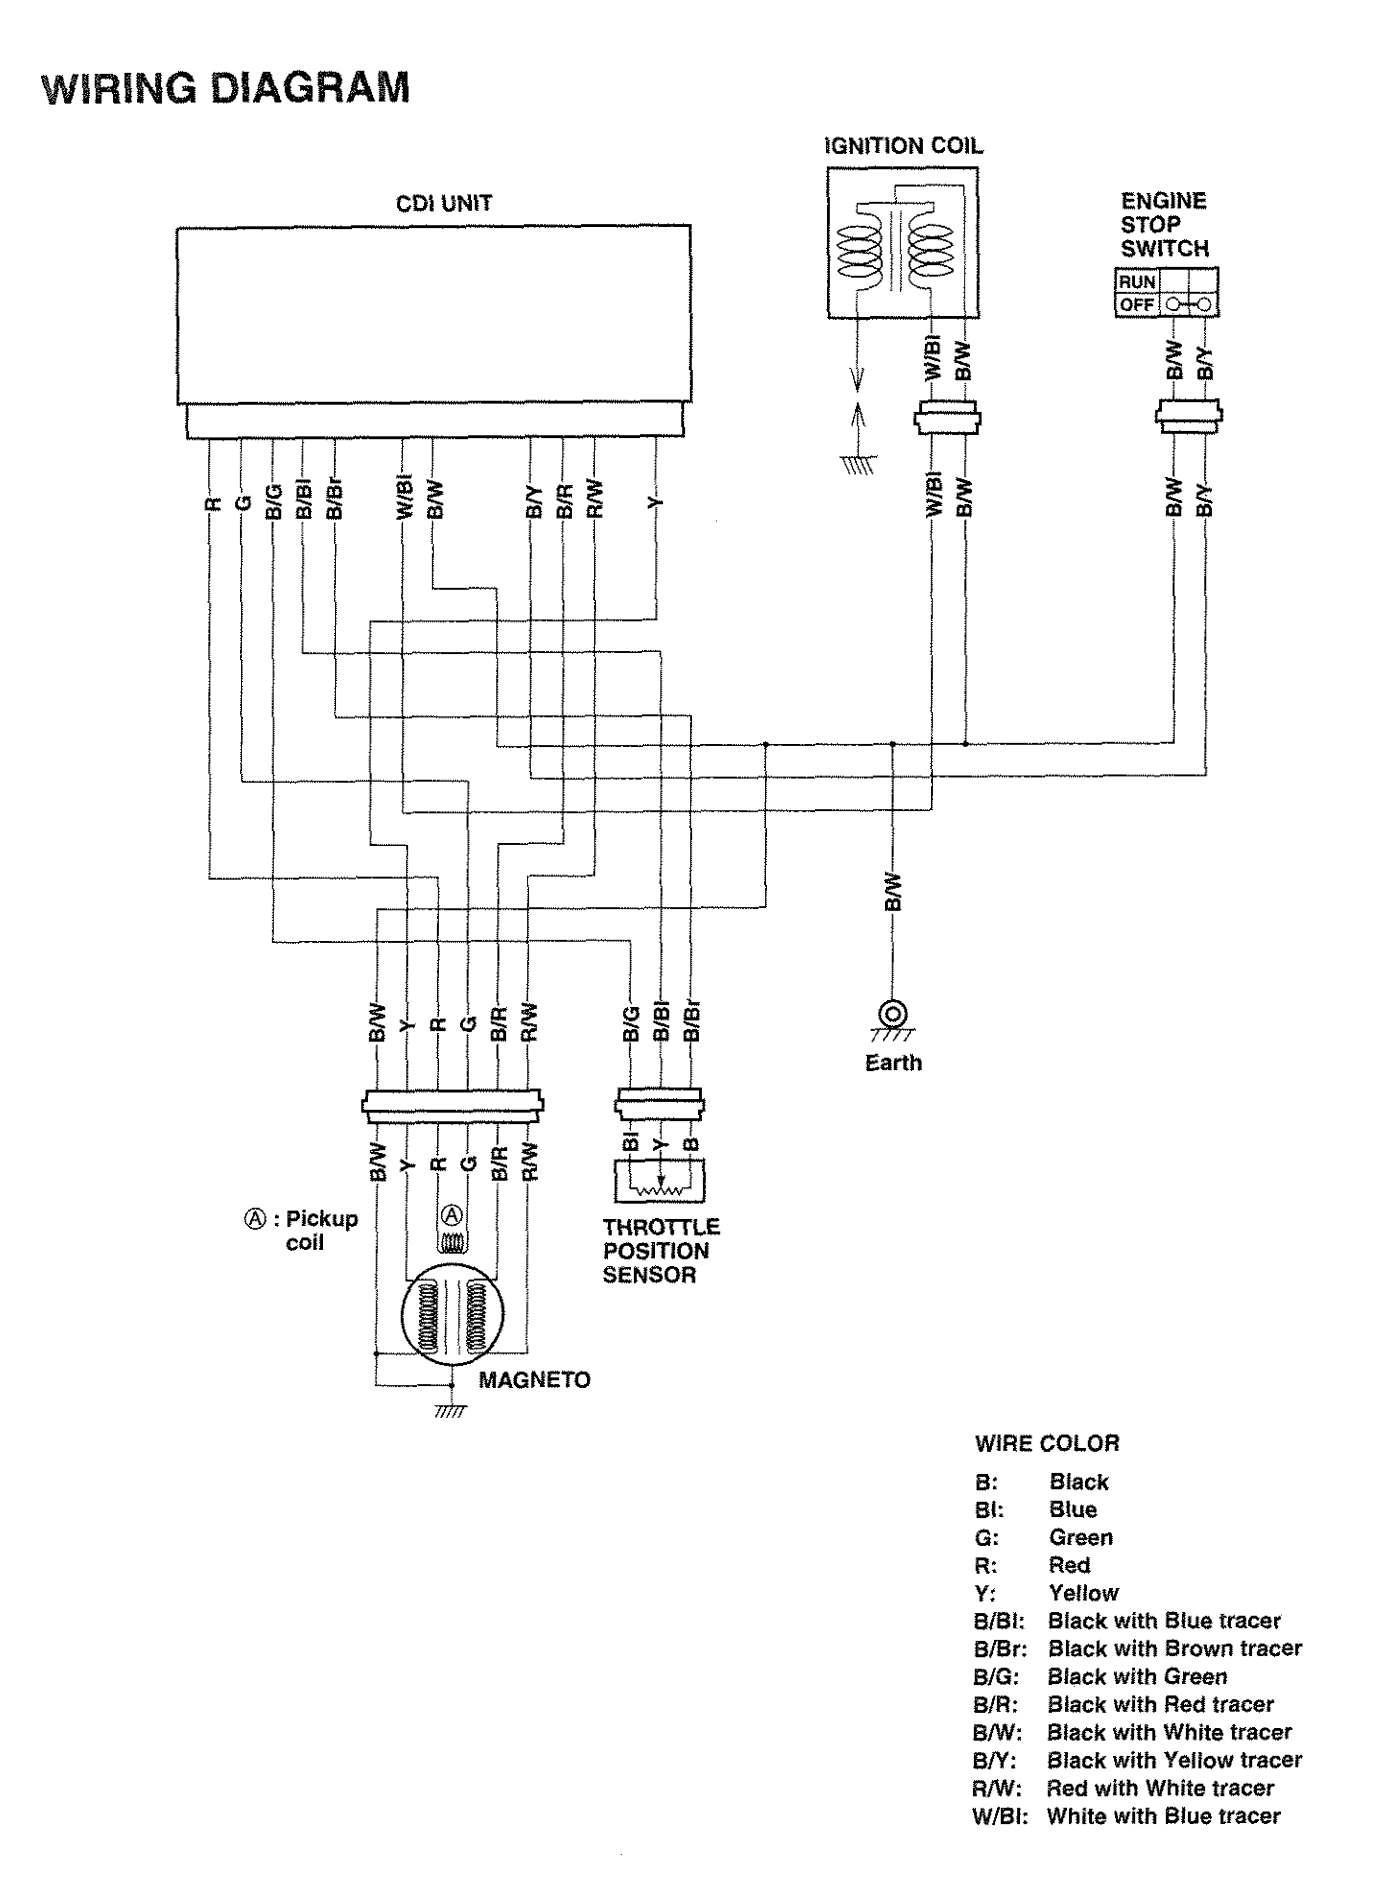 wiring diagram page 2